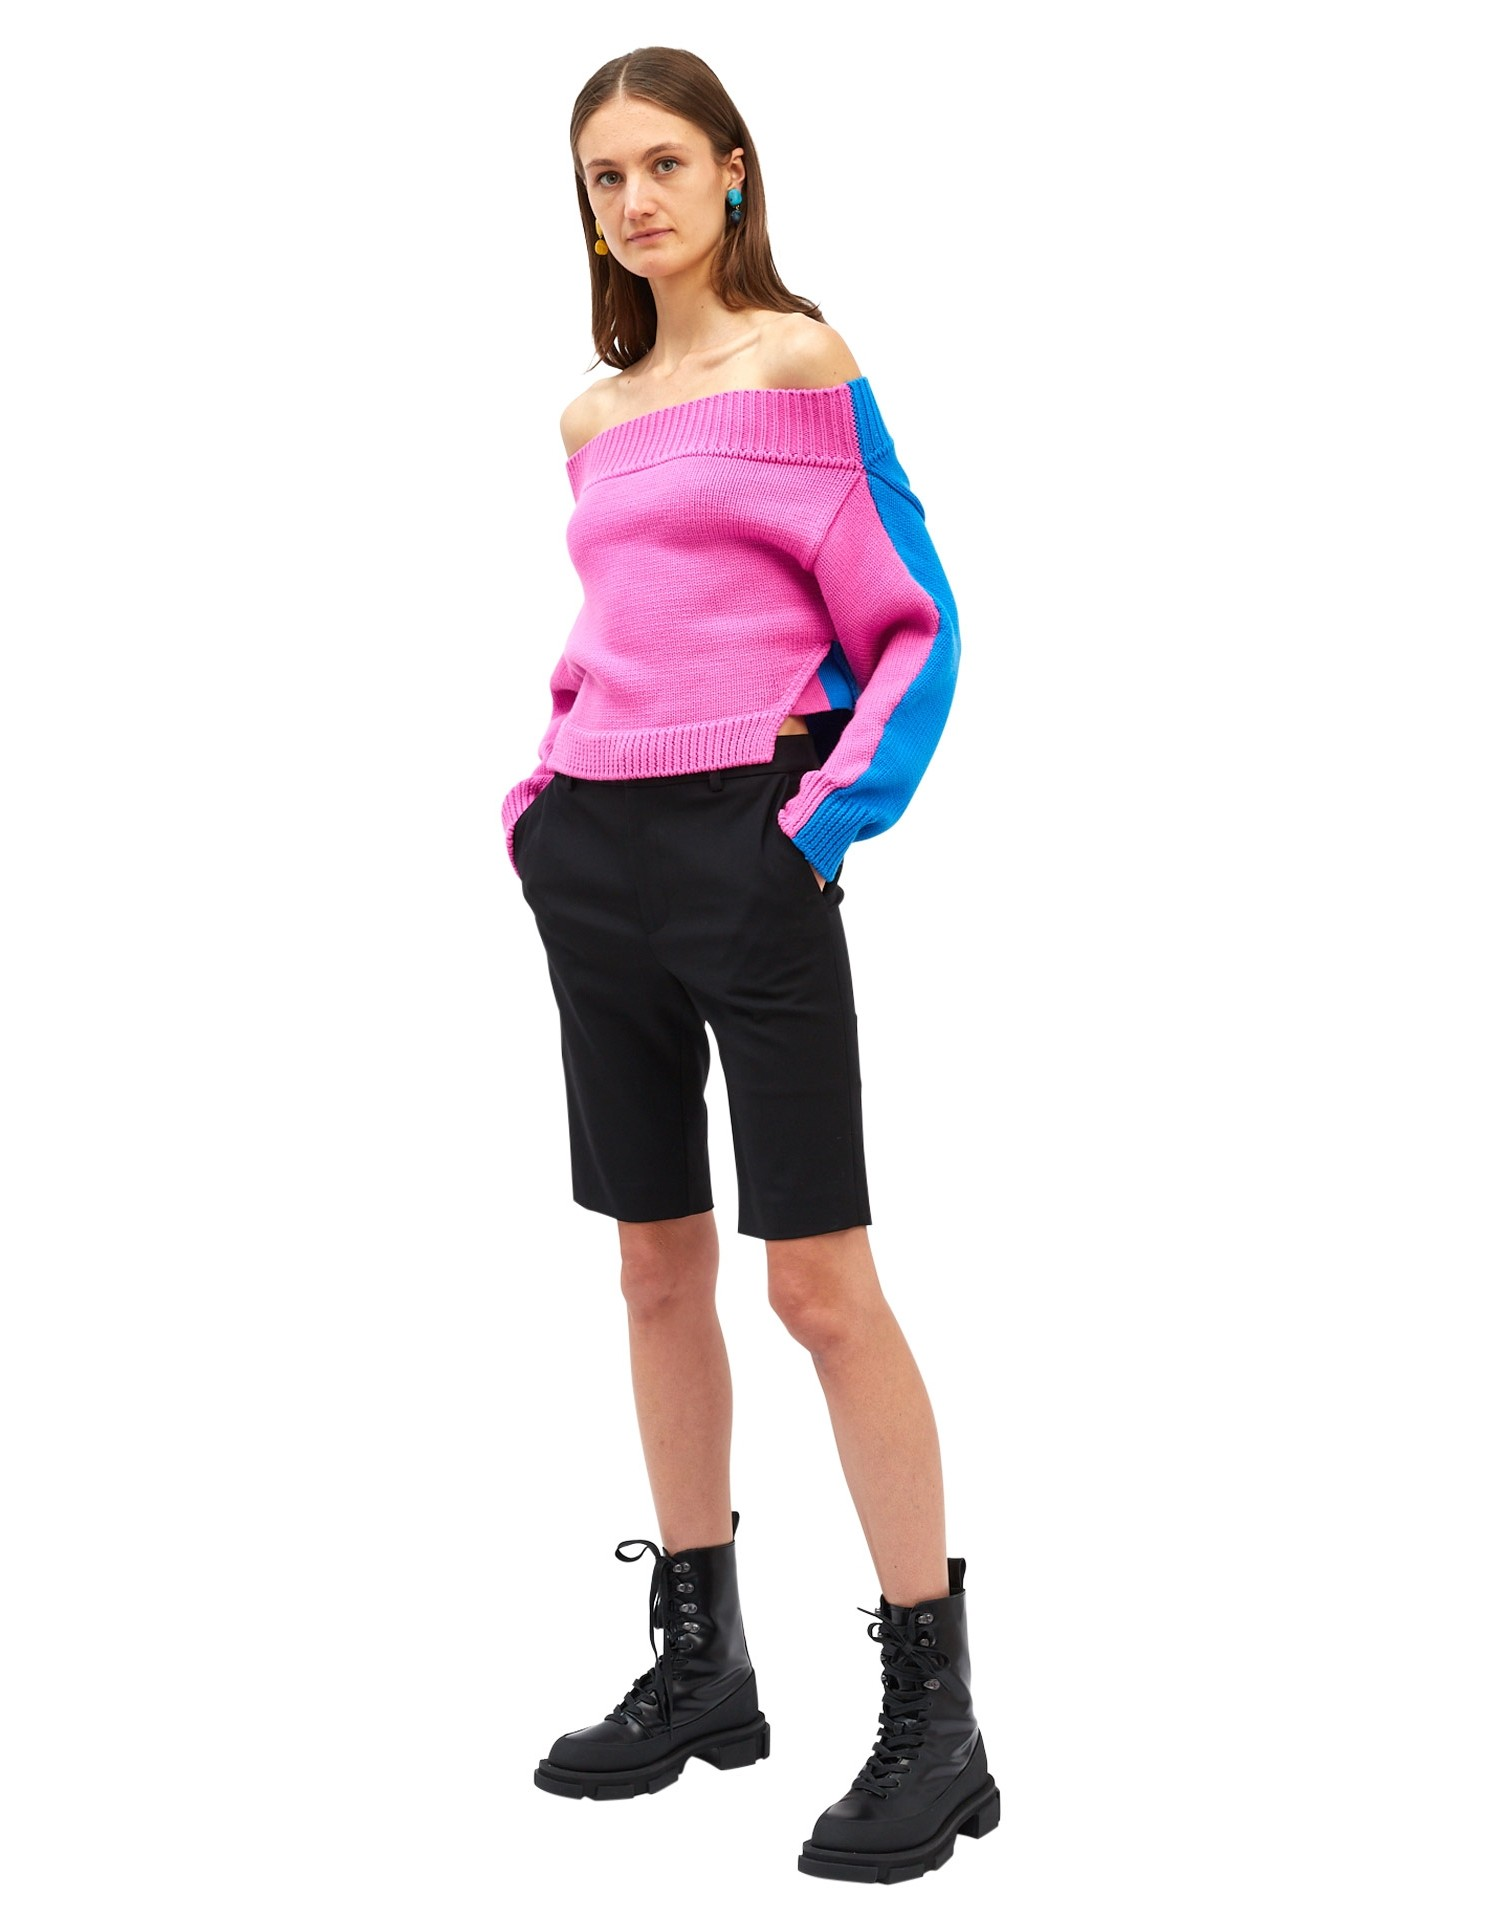 MONSE Bi-Color Cropped Off the Shoulder Sweater on Model Side View